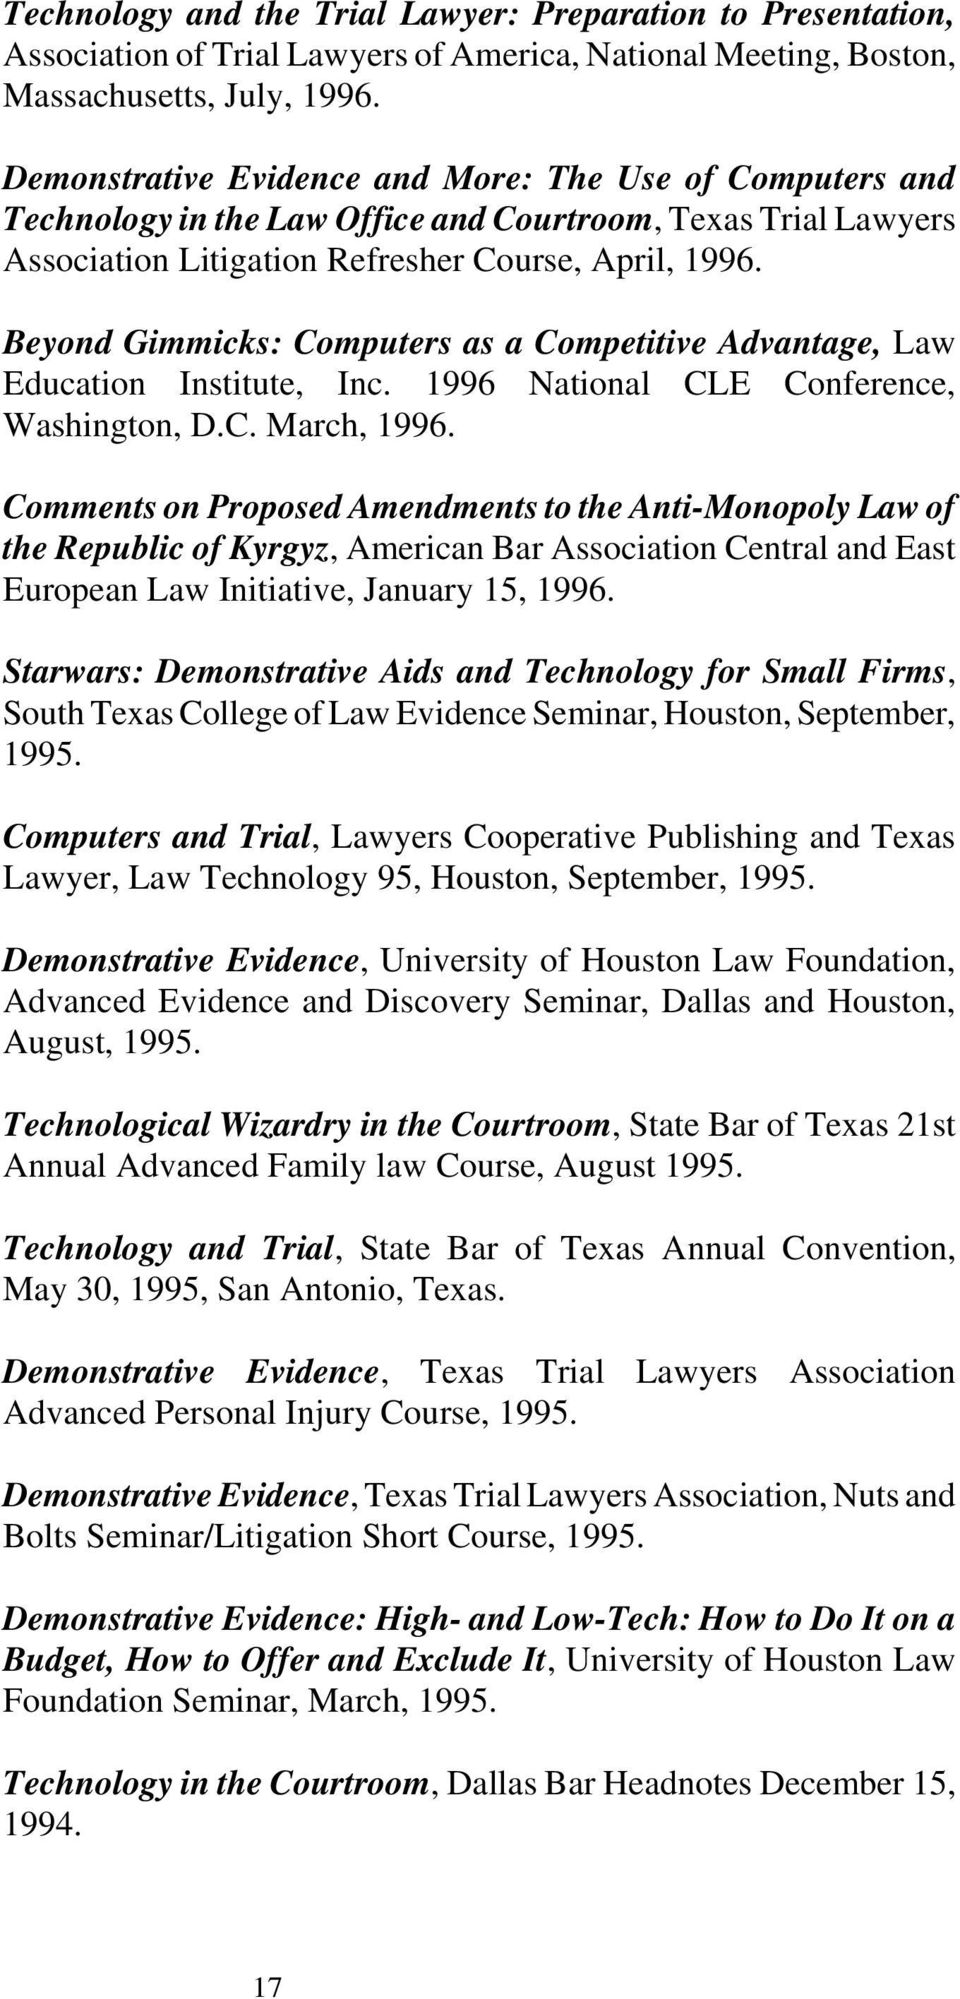 Beyond Gimmicks: Computers as a Competitive Advantage, Law Education Institute, Inc. 1996 National CLE Conference, Washington, D.C. March, 1996.